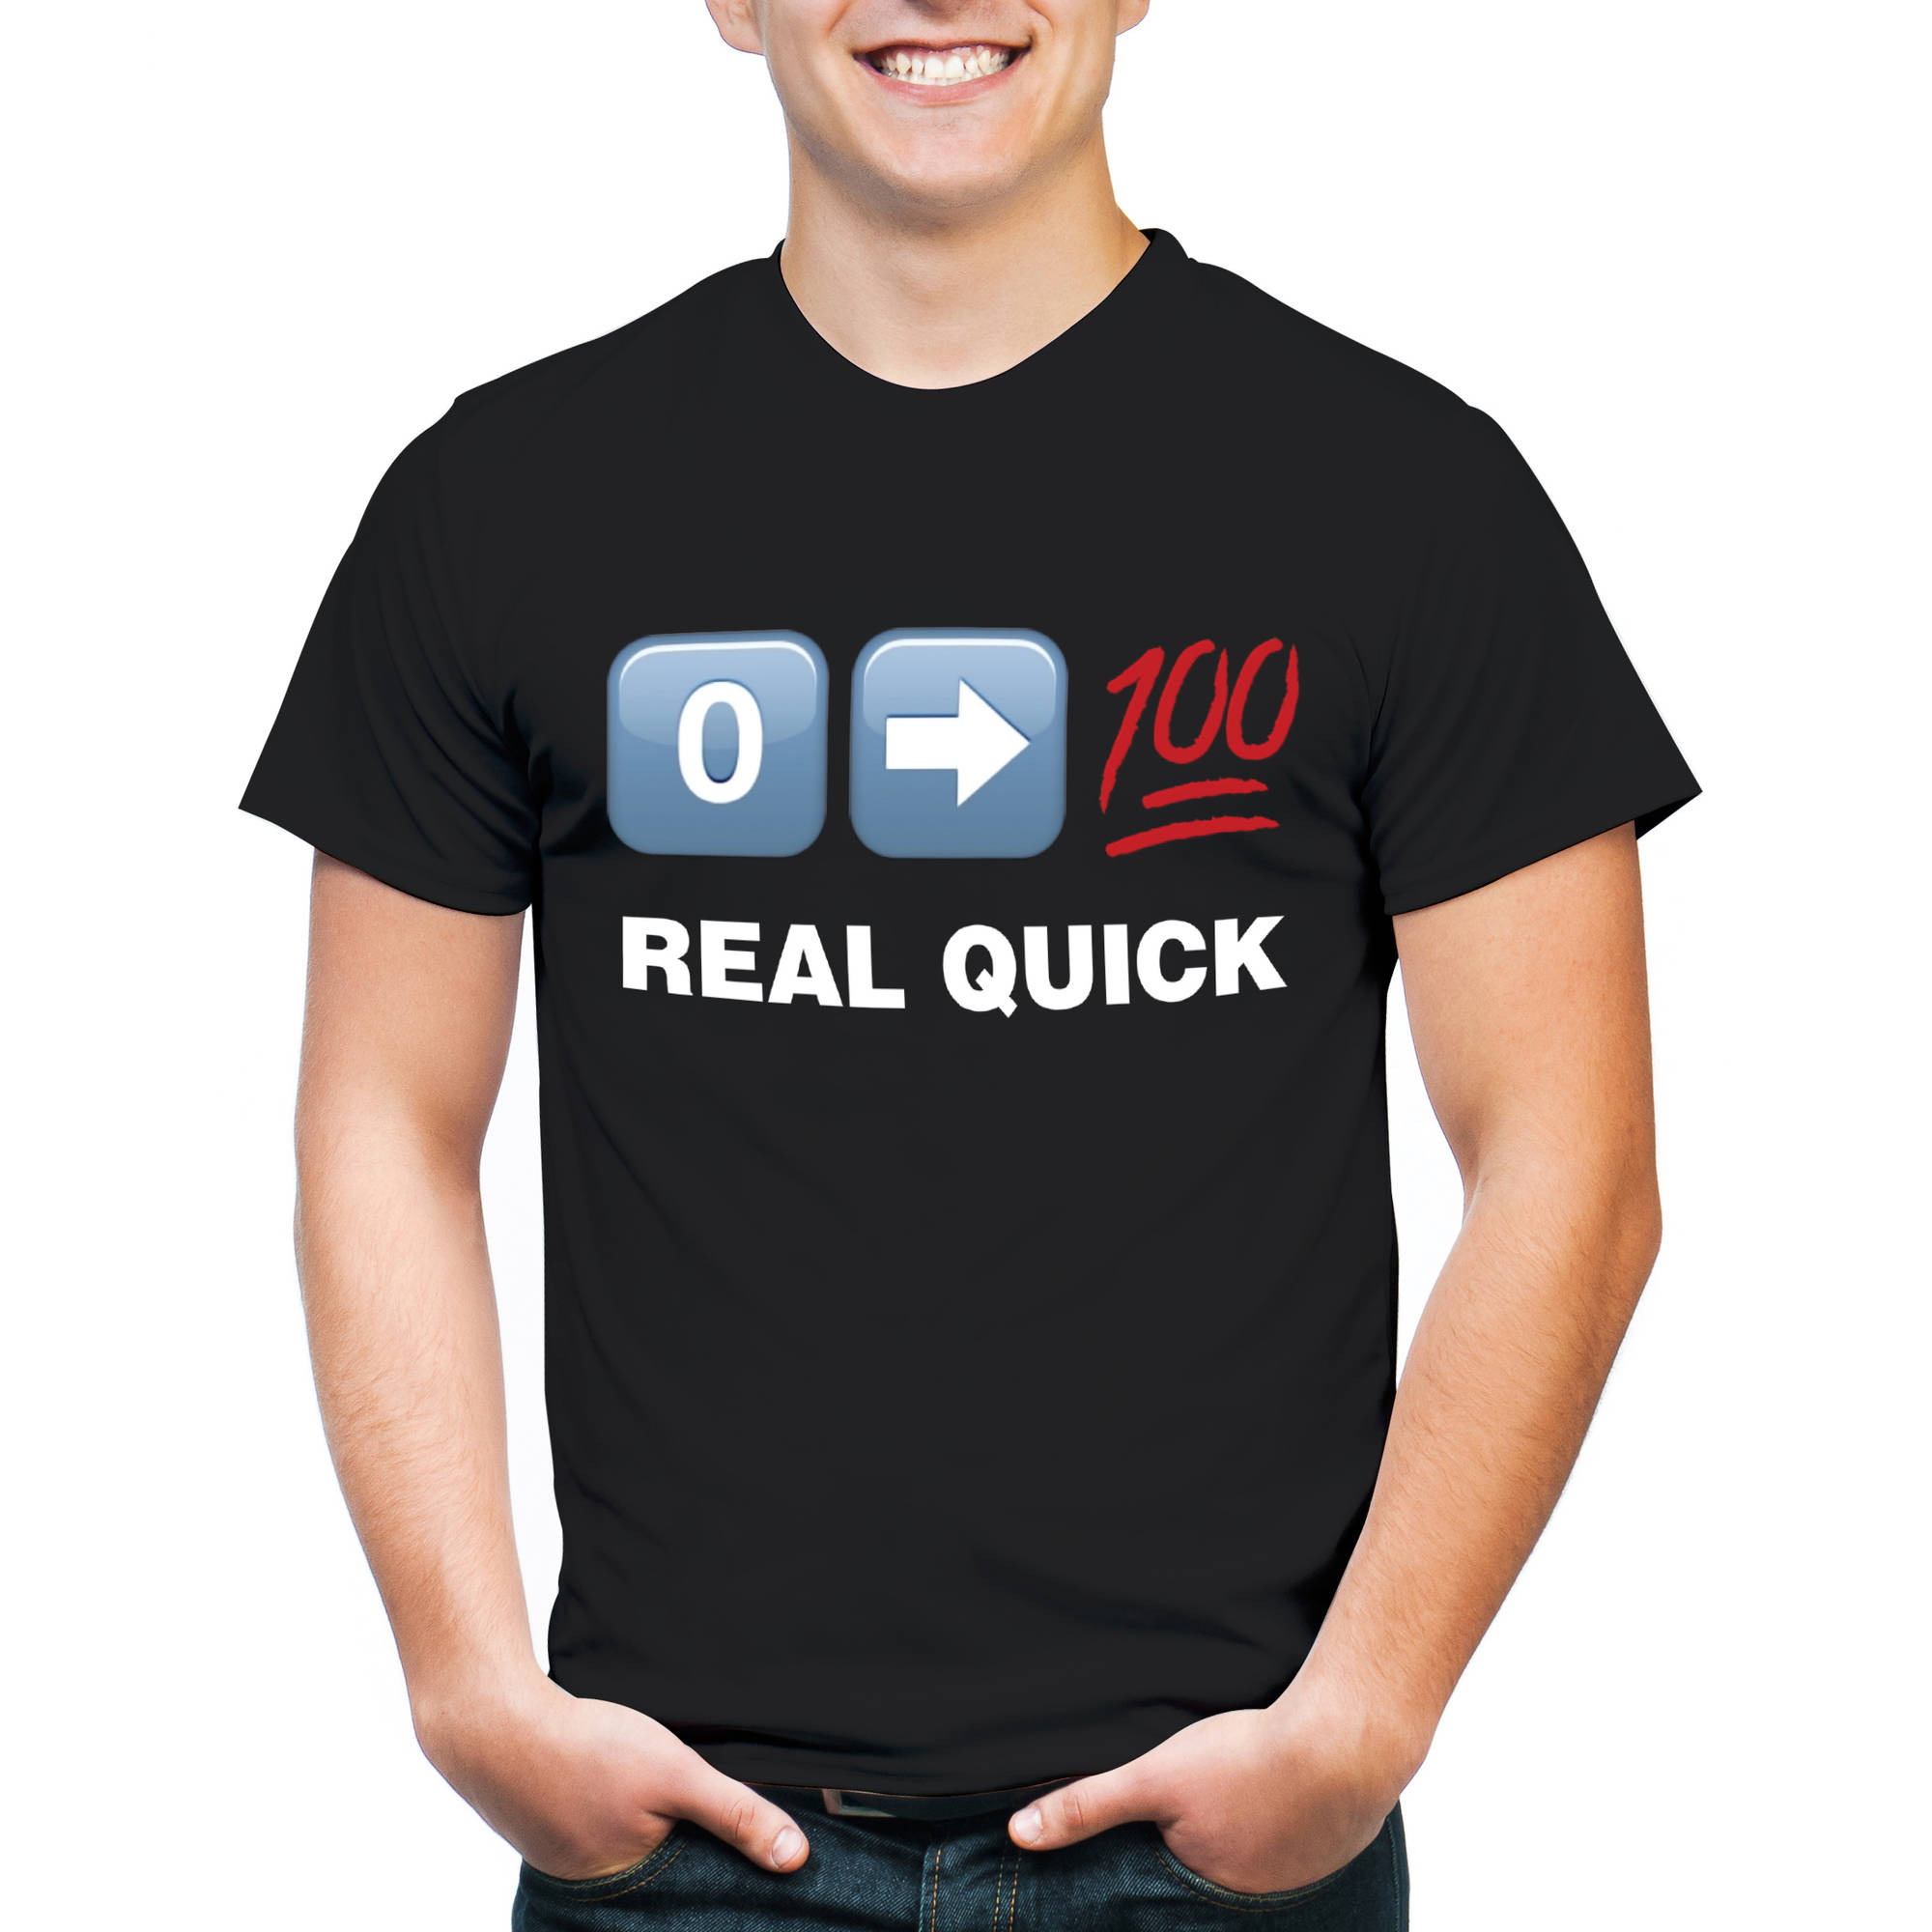 0 --> 100 Real Quick Big Men's Graphic Tee, 2XL